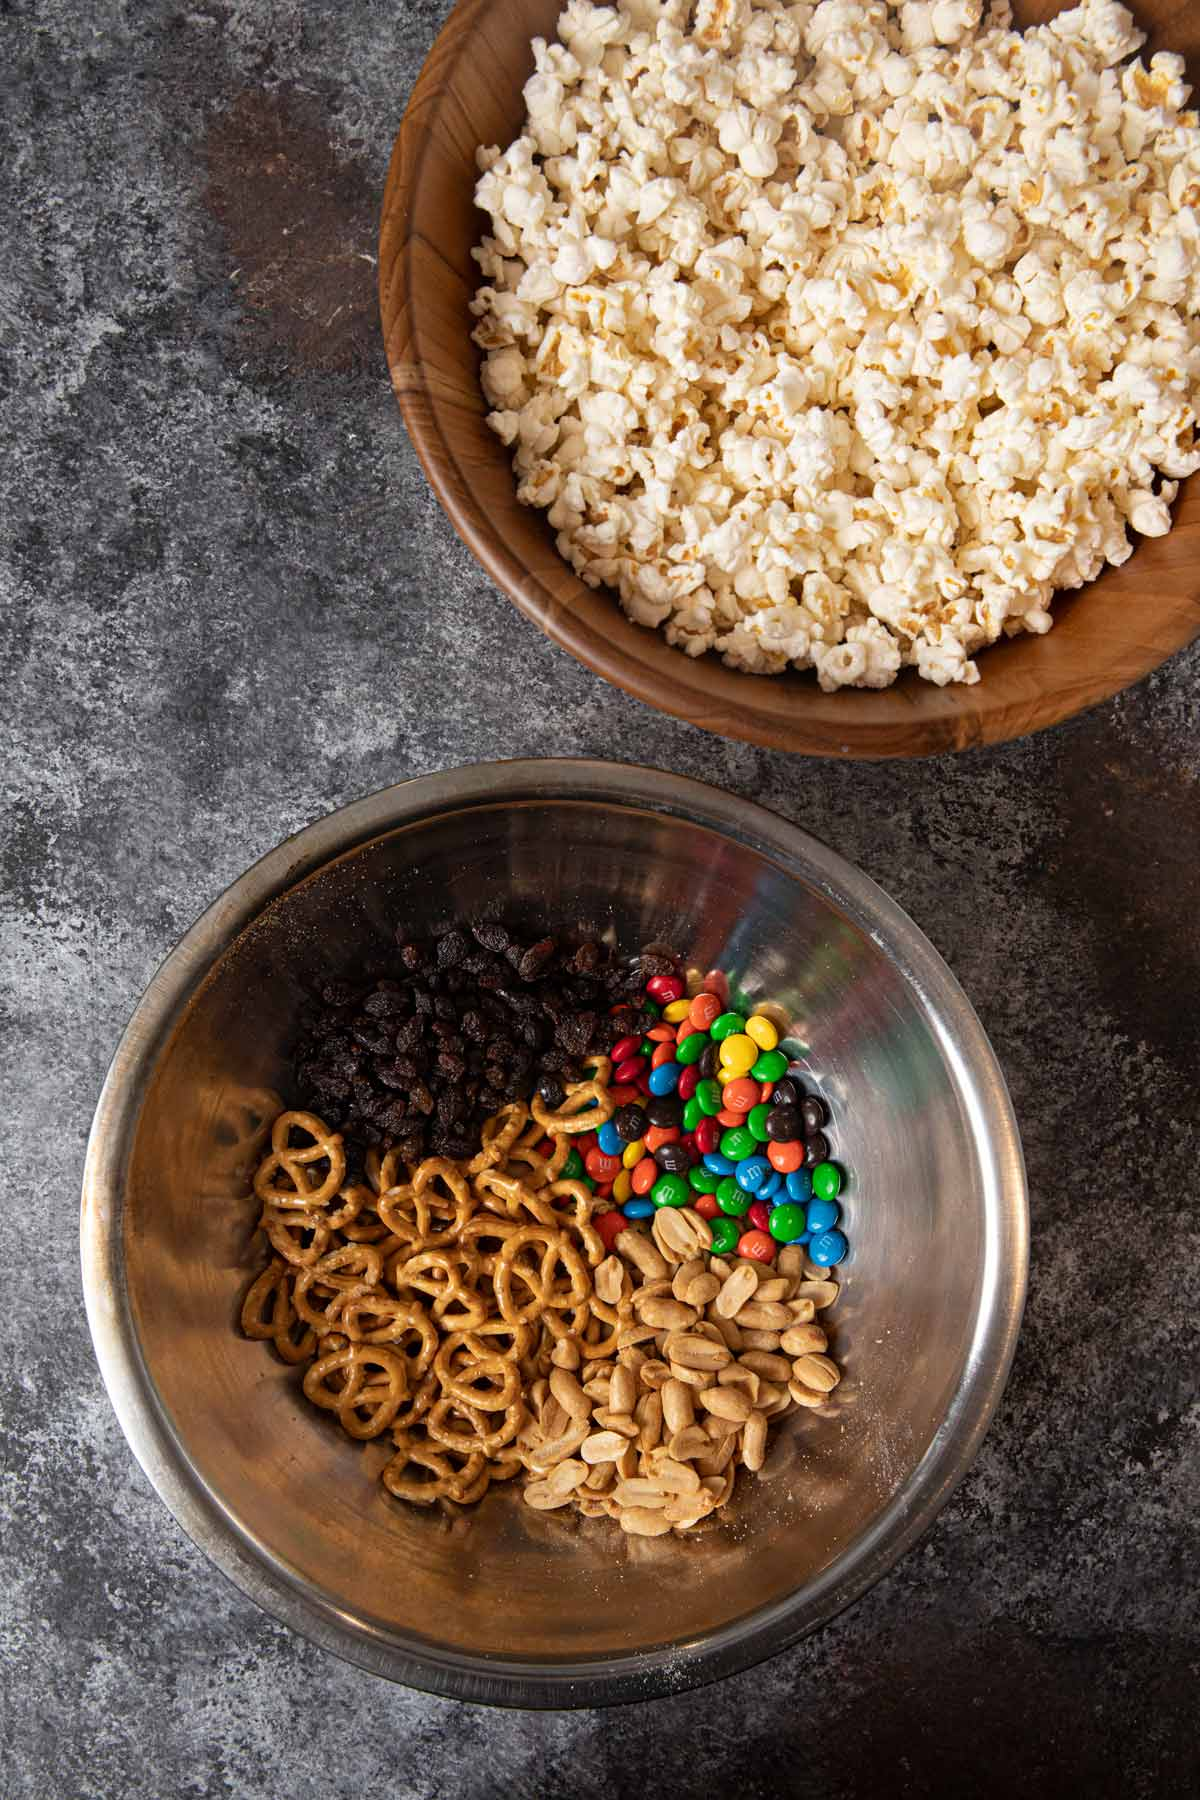 Concession Stand Popcorn Mix ingredients in bowls